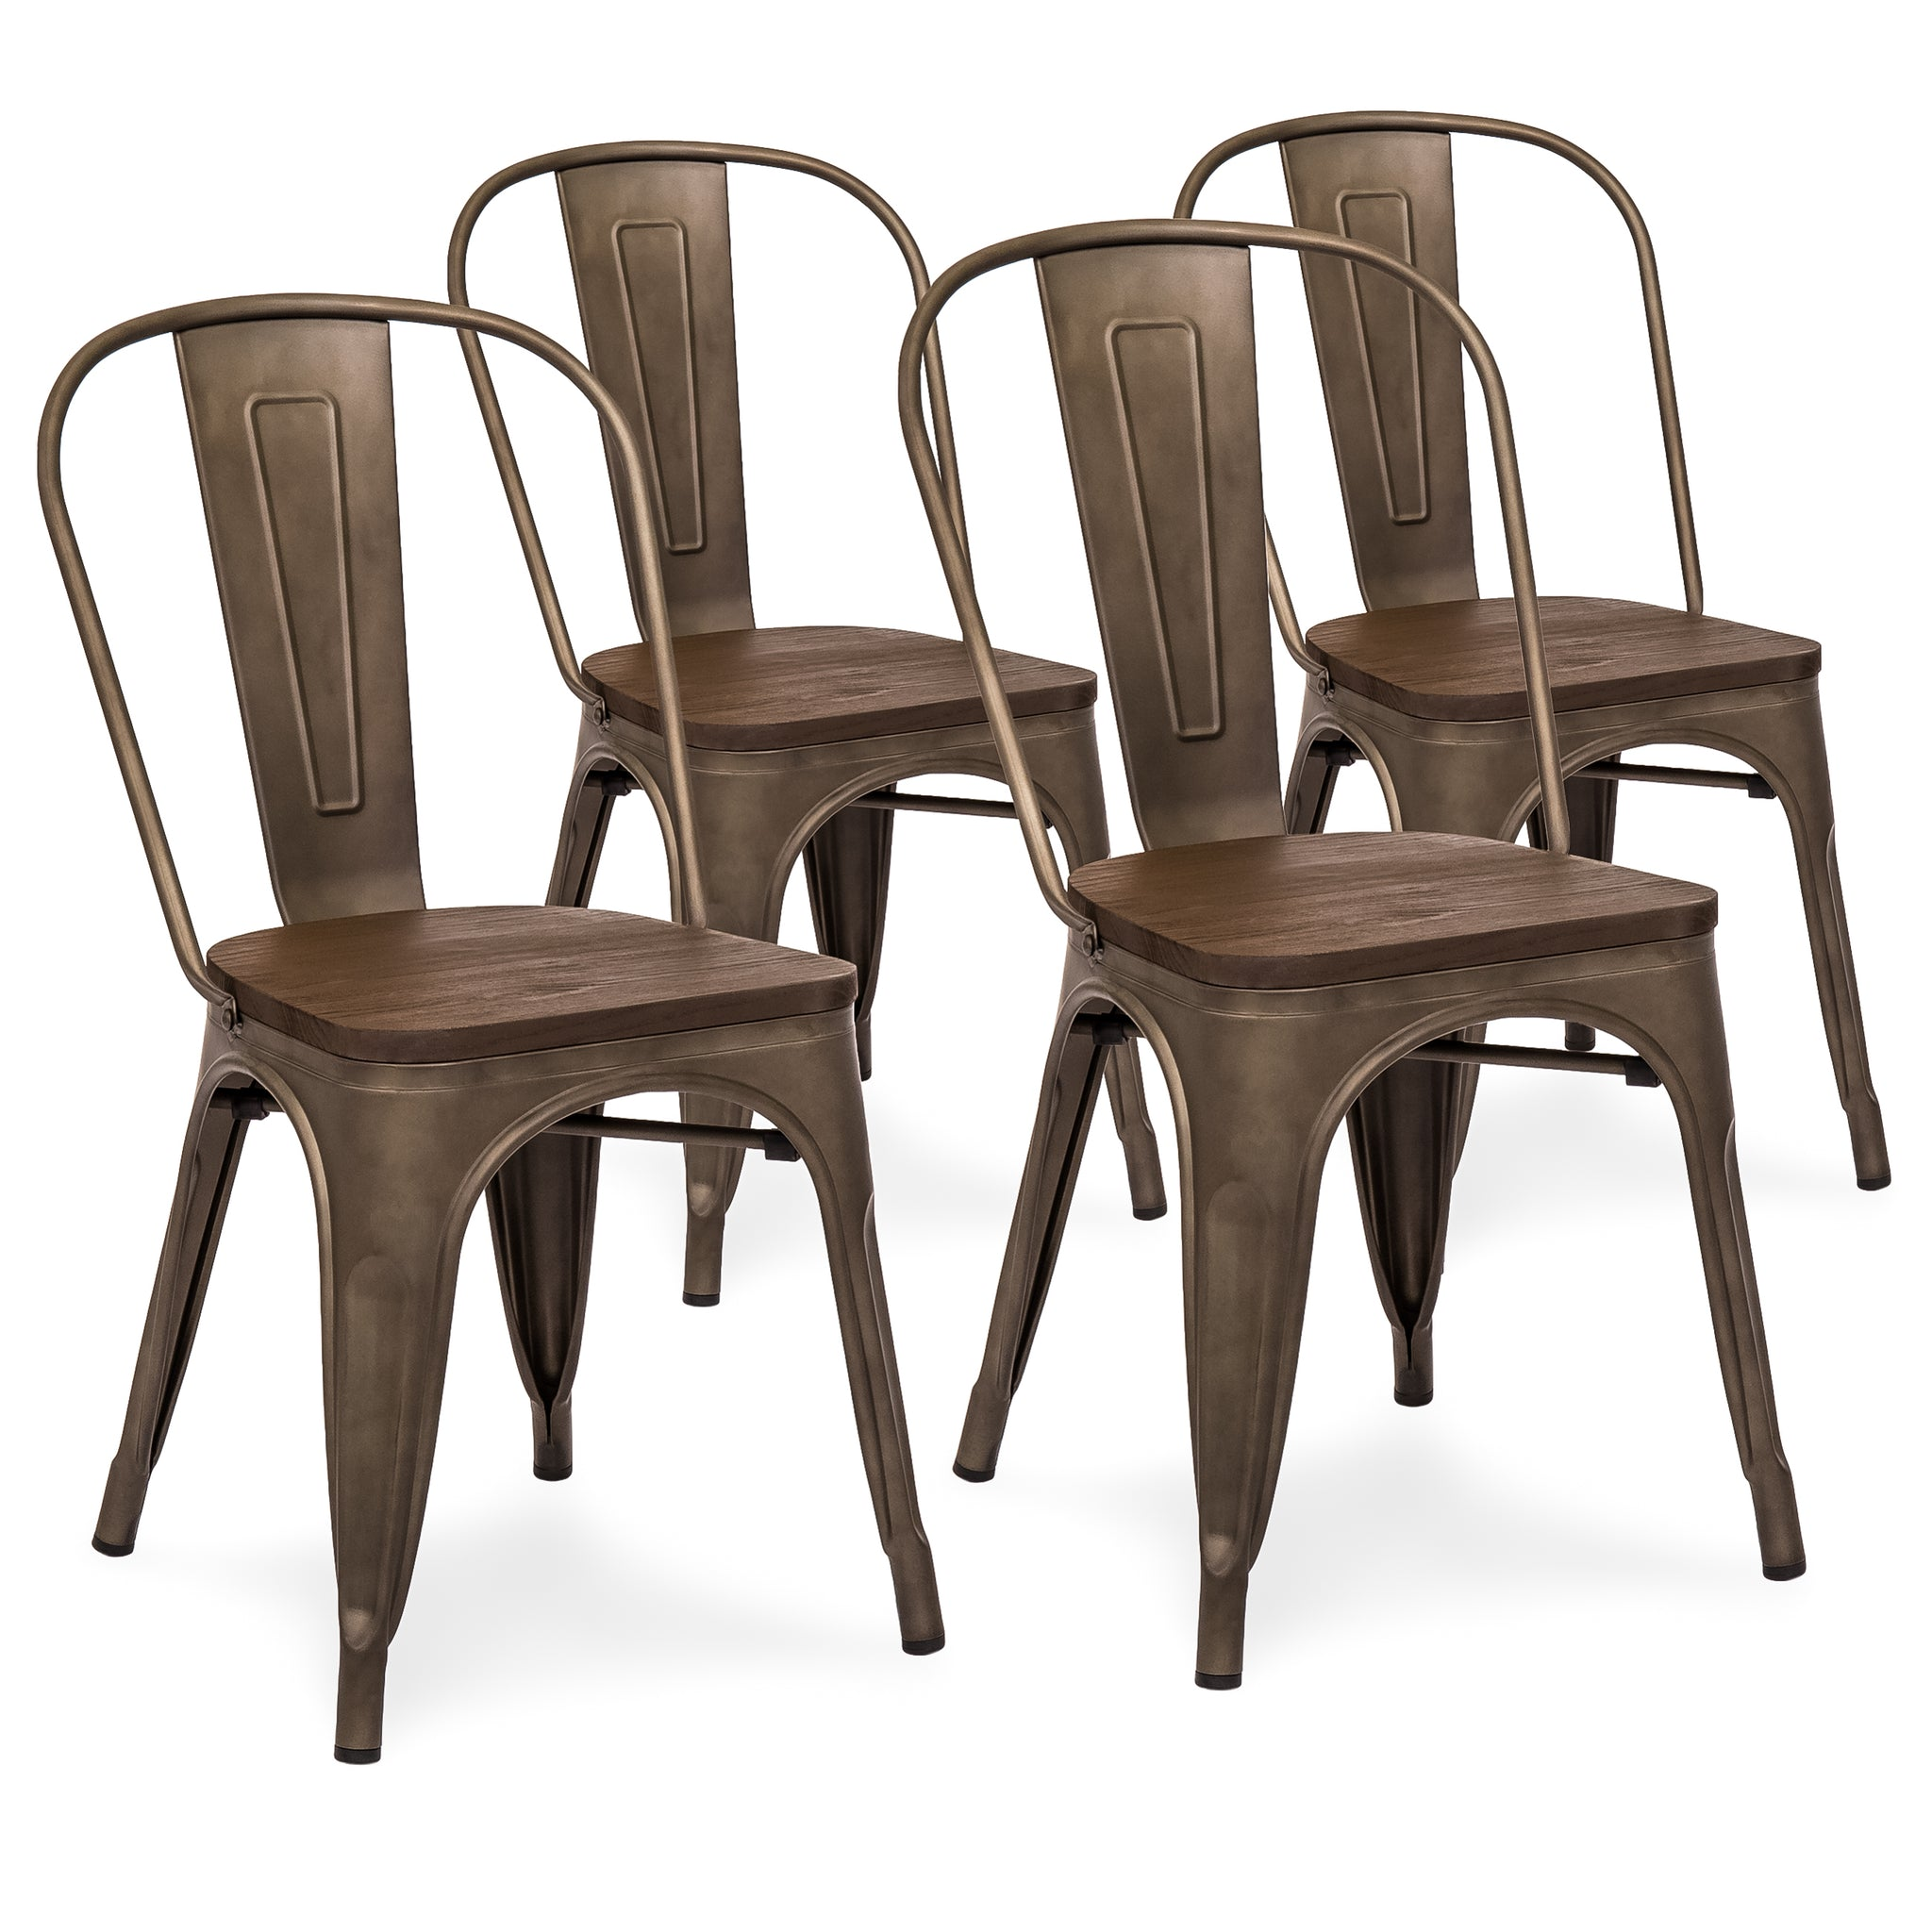 Distressed Metal Furniture. Set Of 4 Industrial Distressed Metal Dining  Chairs W/ Wood Seat